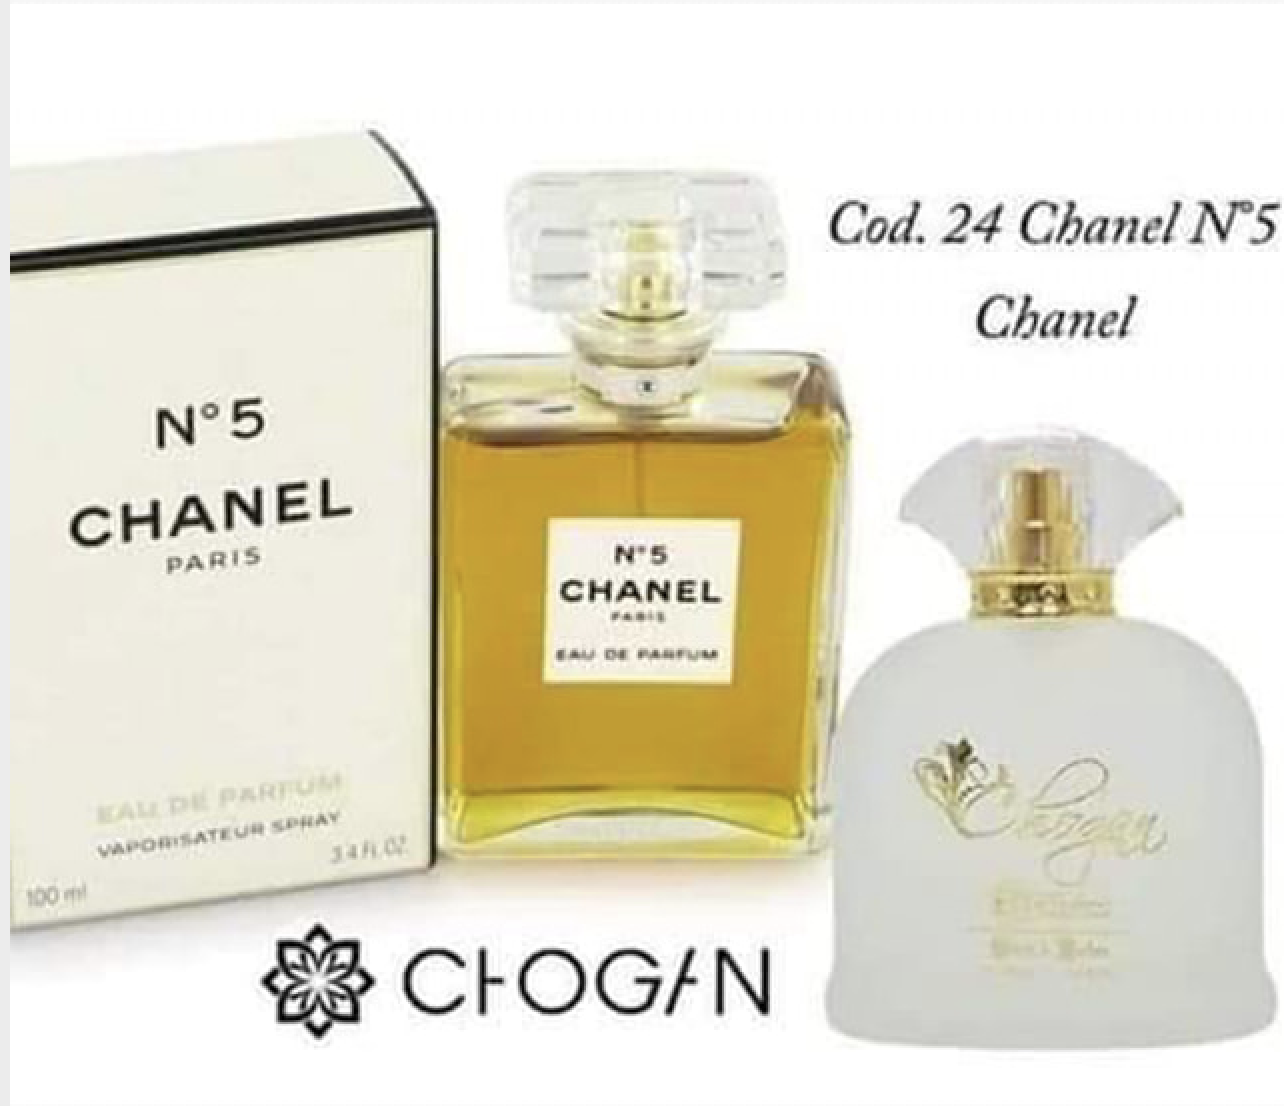 profumi: CHOGAN: PROFUMO DONNA ISPIRATO A CHANEL N. 5 BY CHANEL – 100 ML (024)